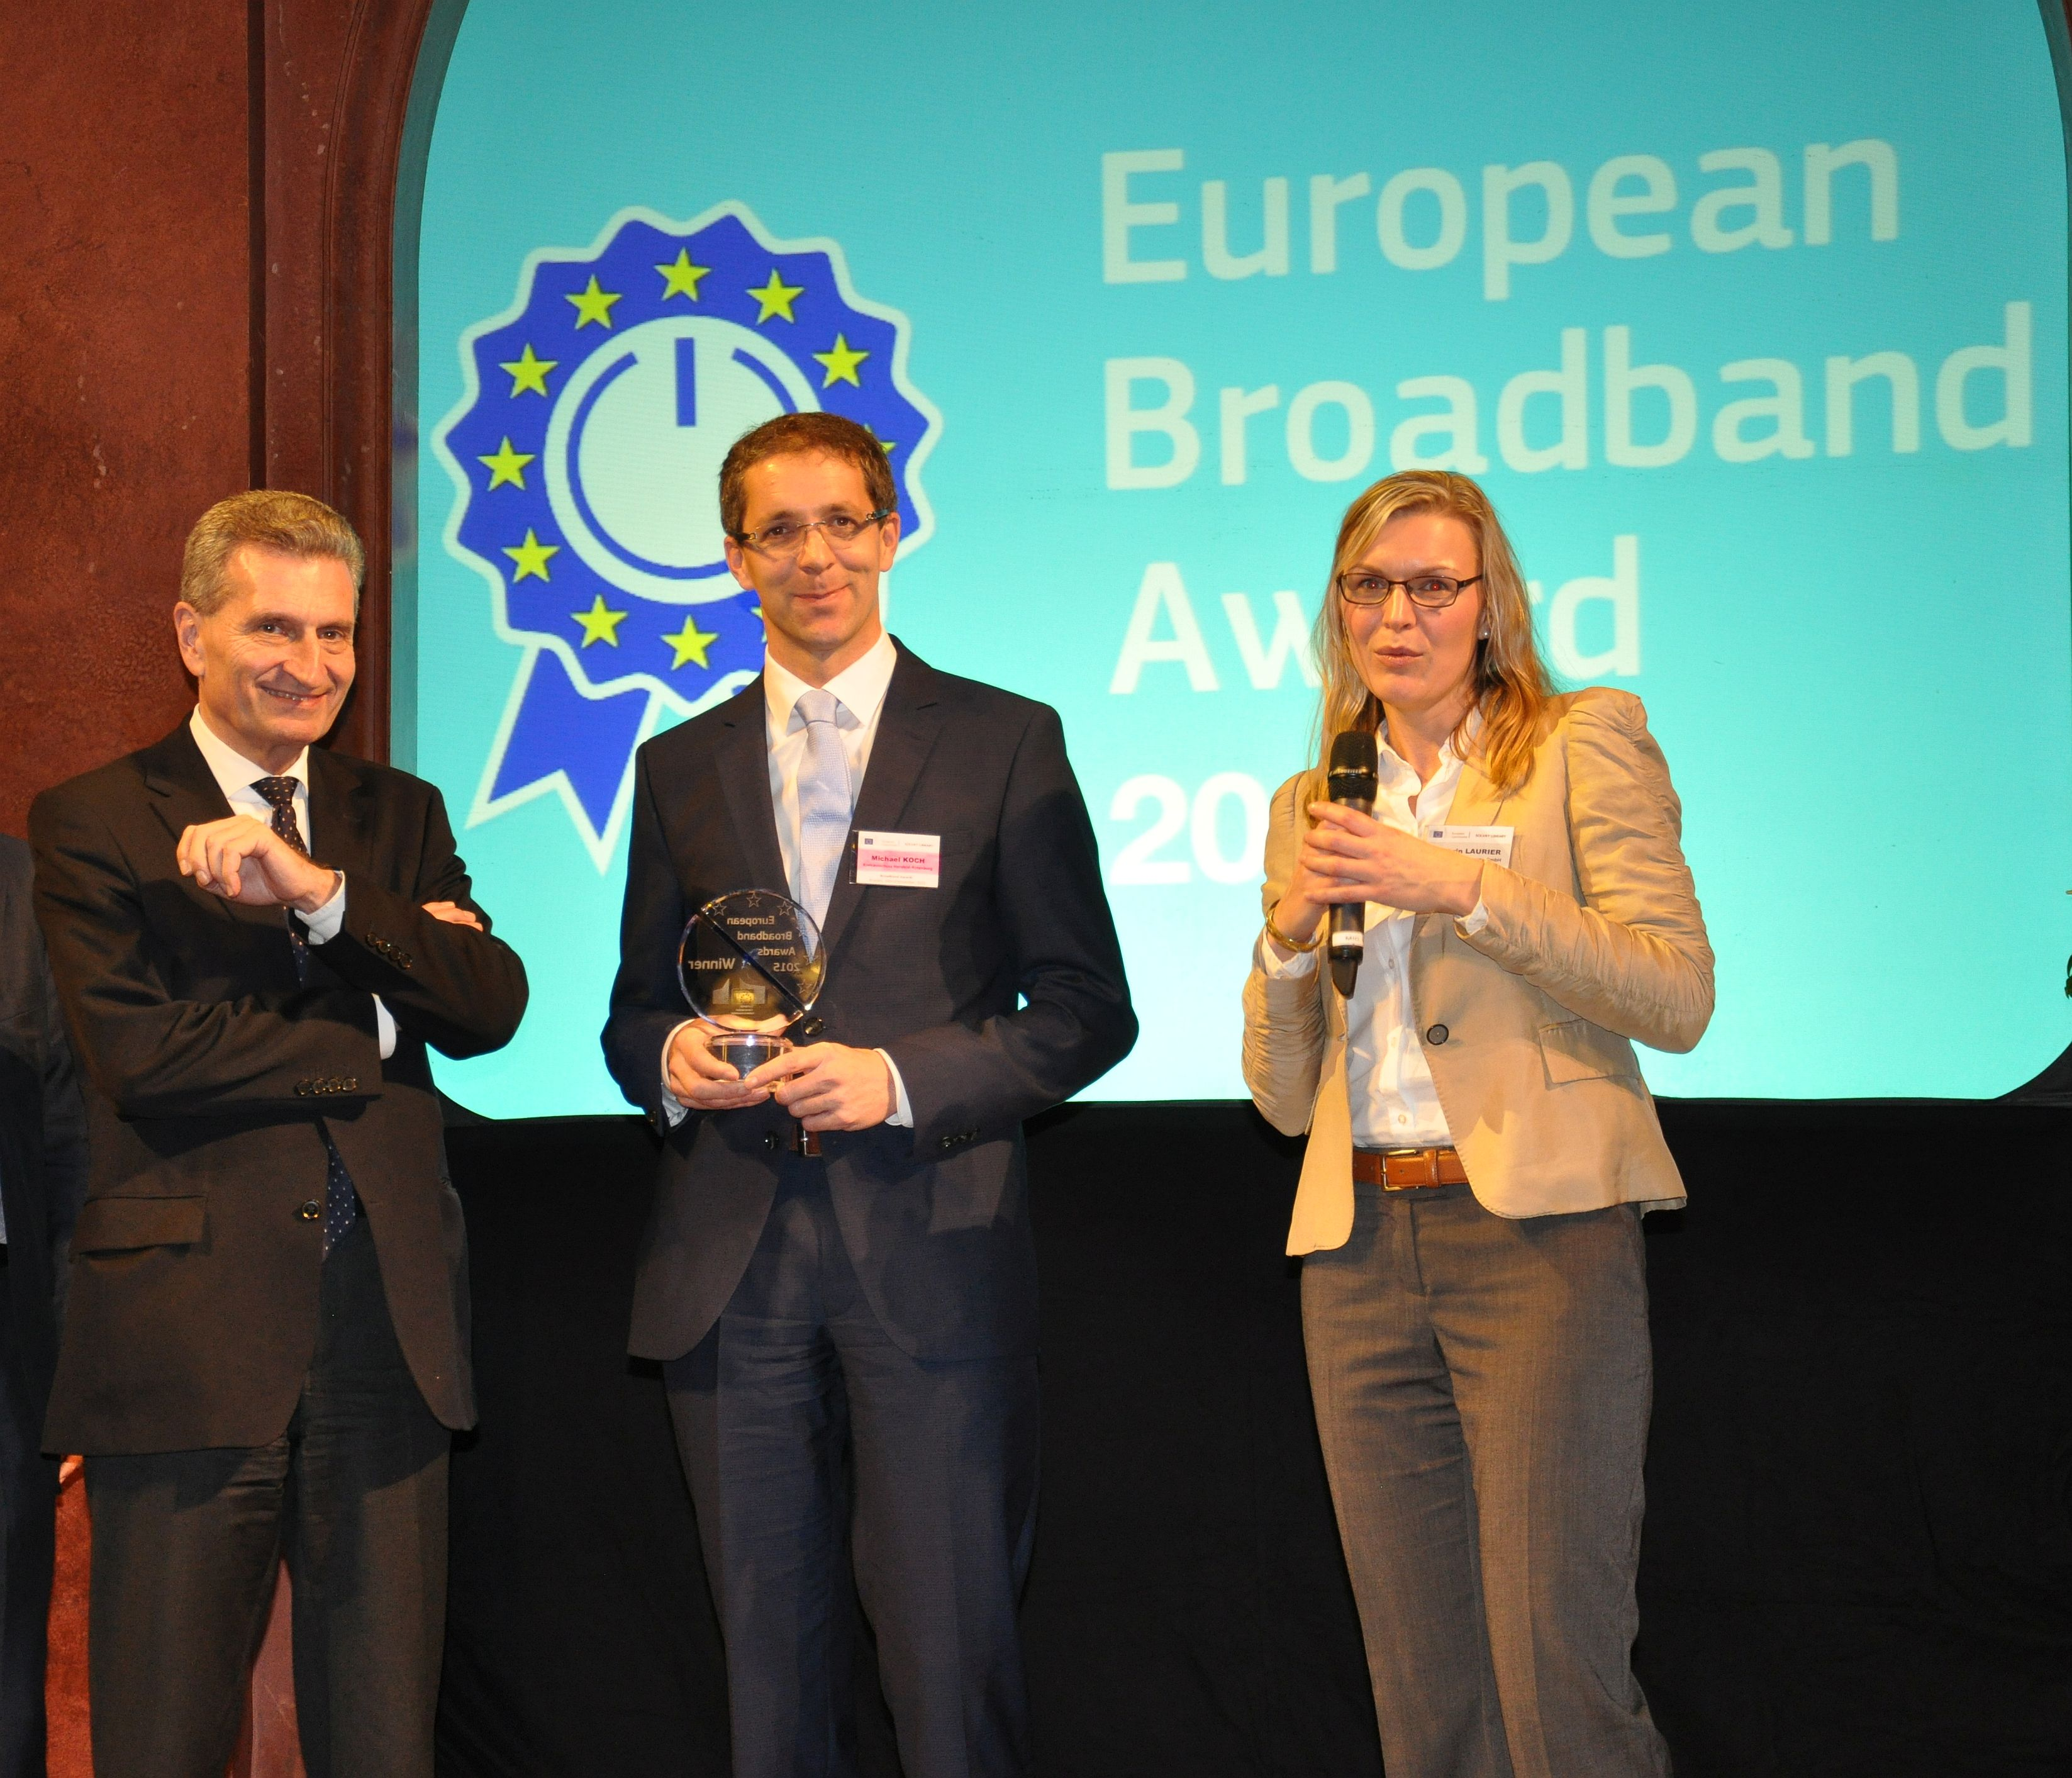 EU-Broadband-Award